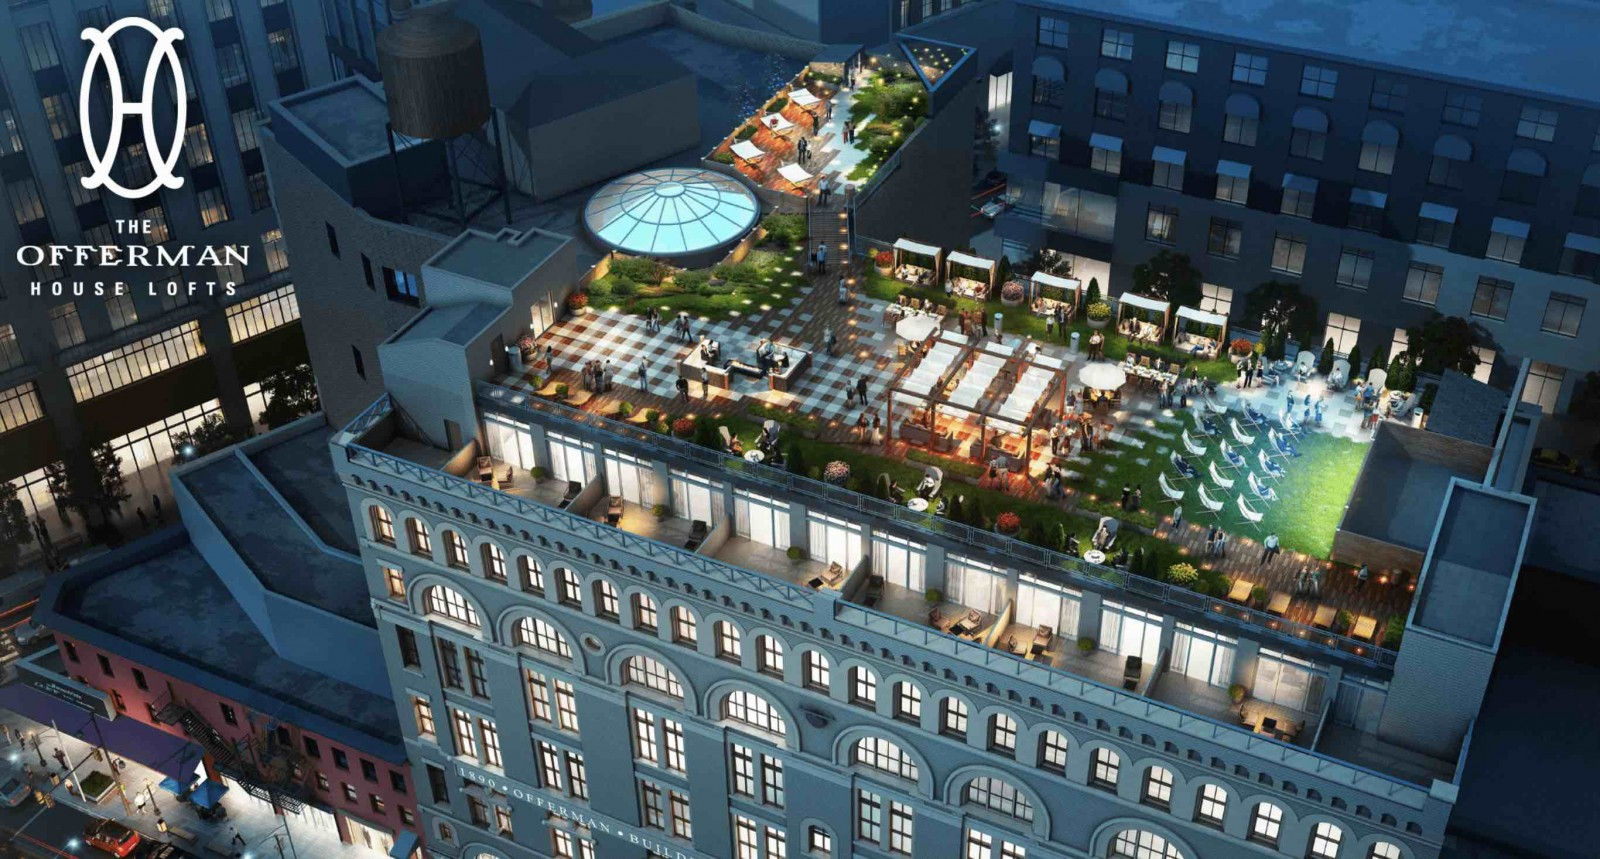 rooftop-decks-nyc-roof-terrace-manhattan